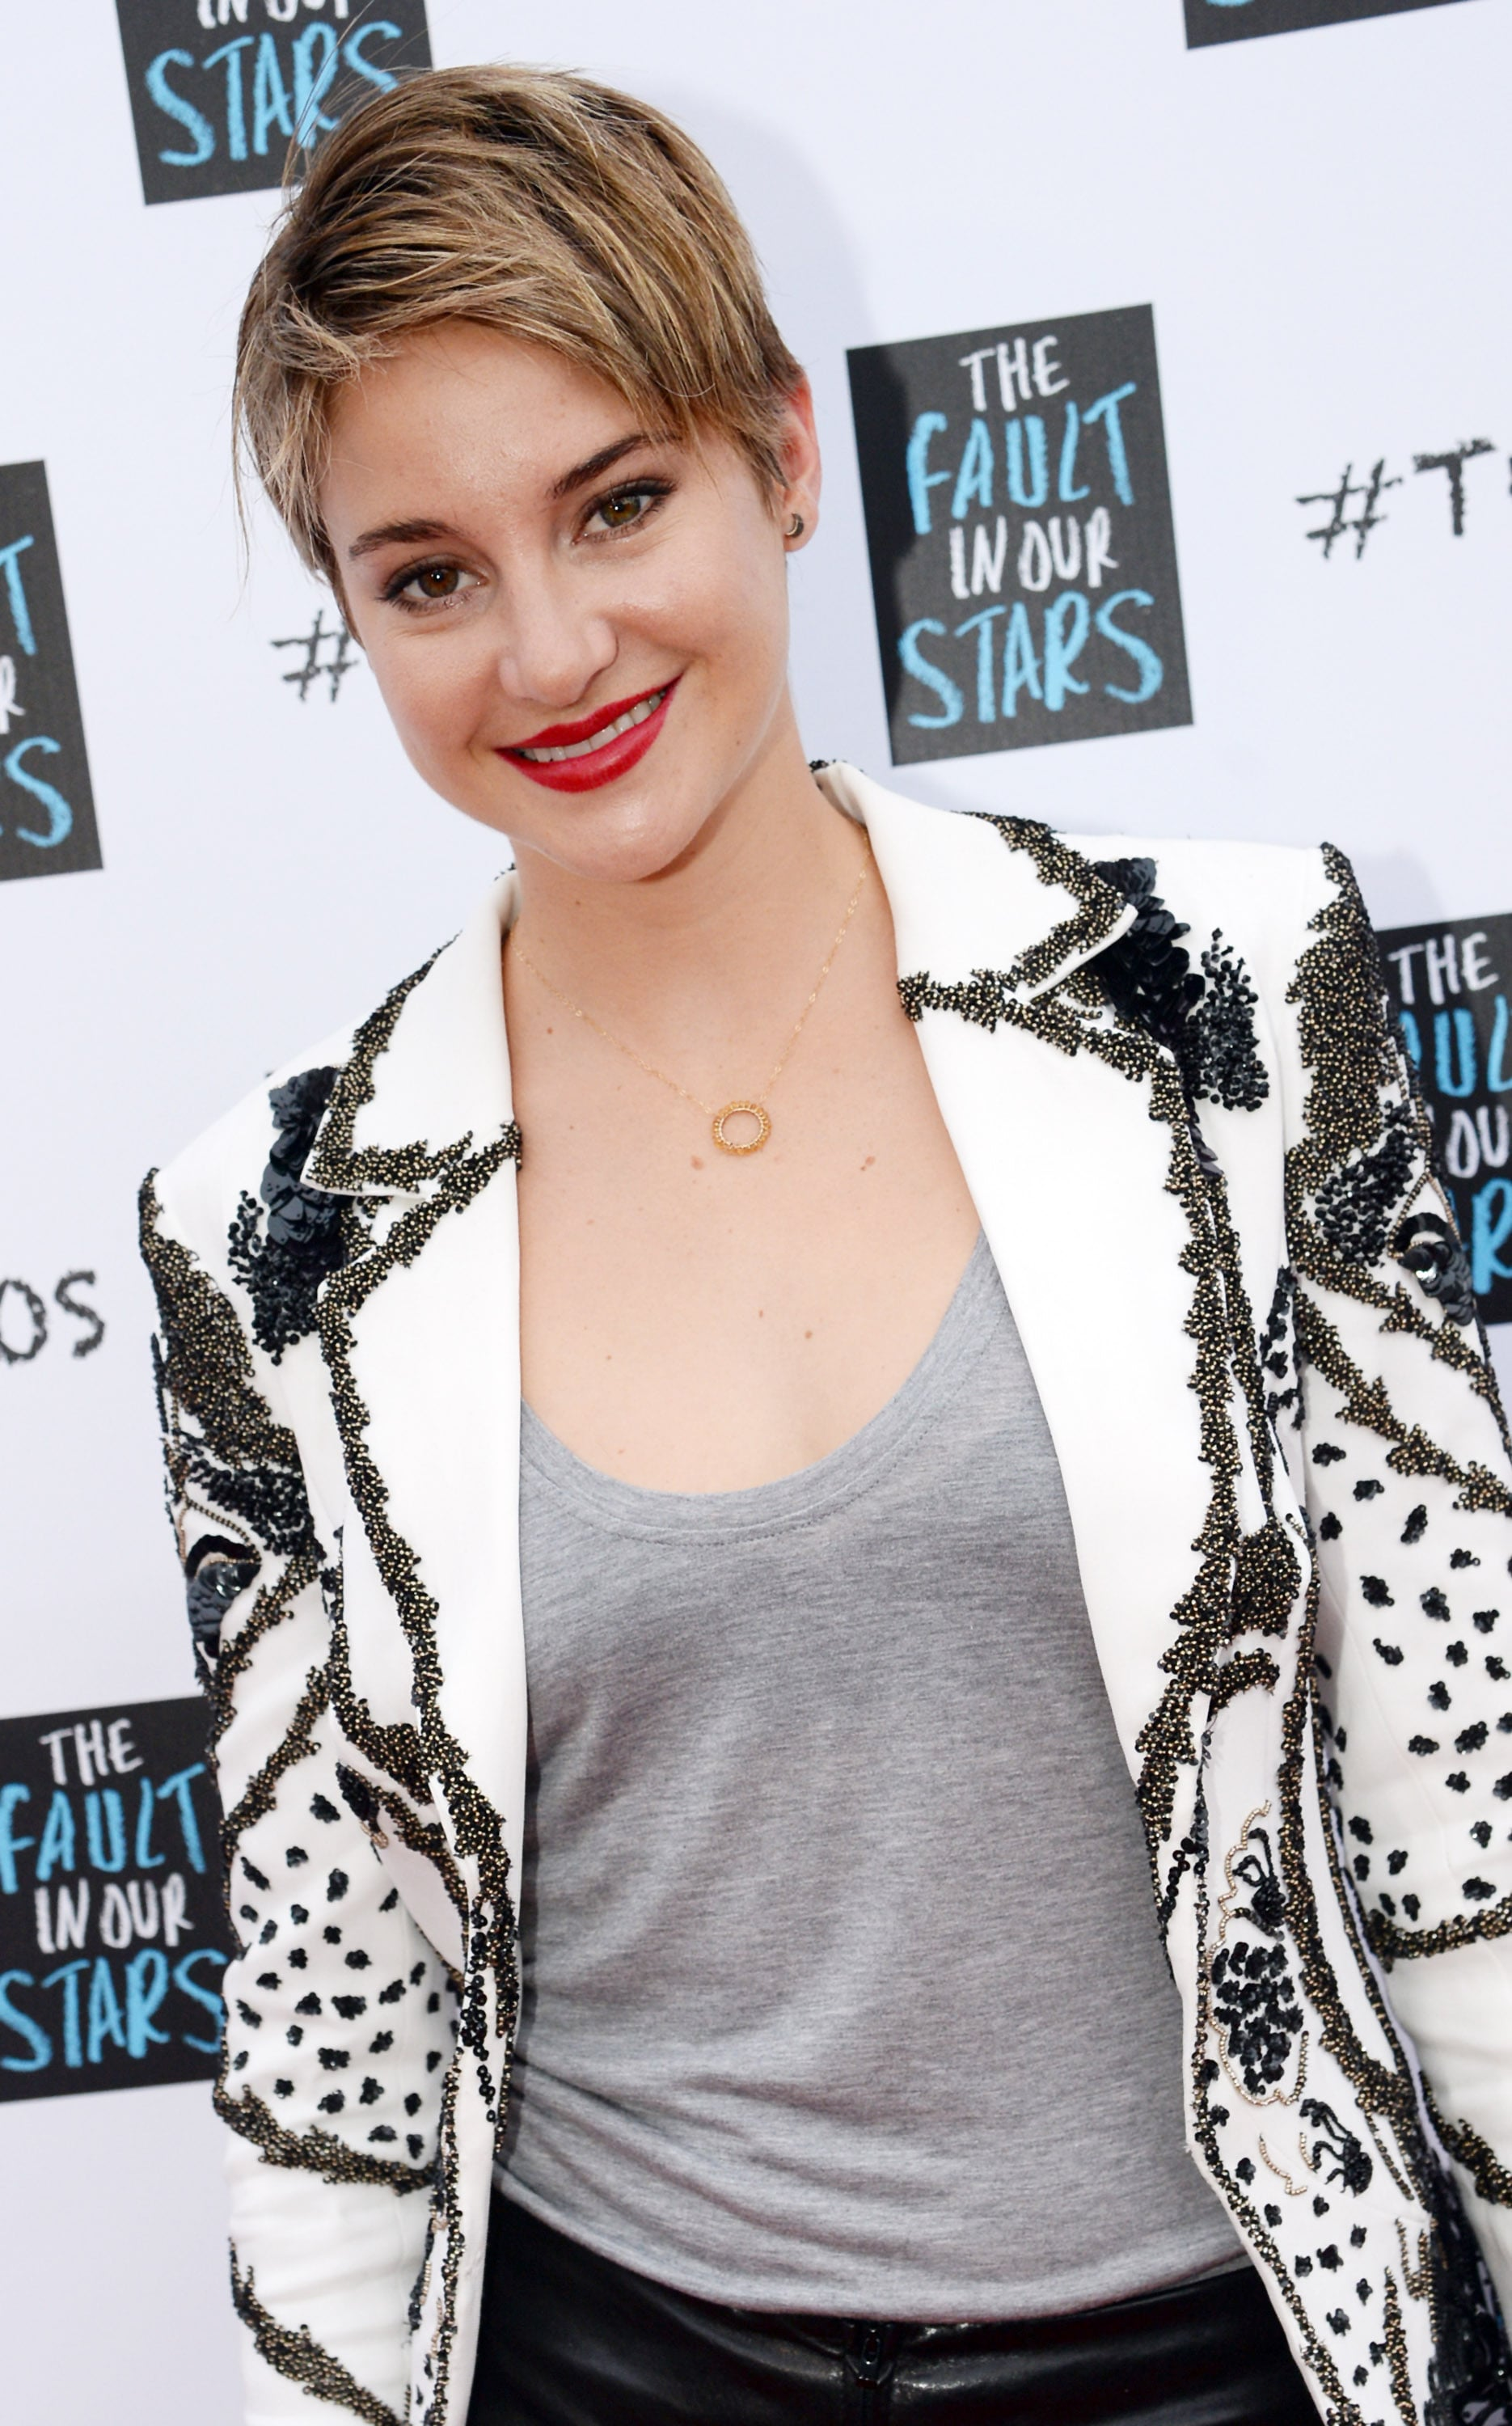 Shailene and Ansel Bring Surprises to the TFIOS Tour in Nashville